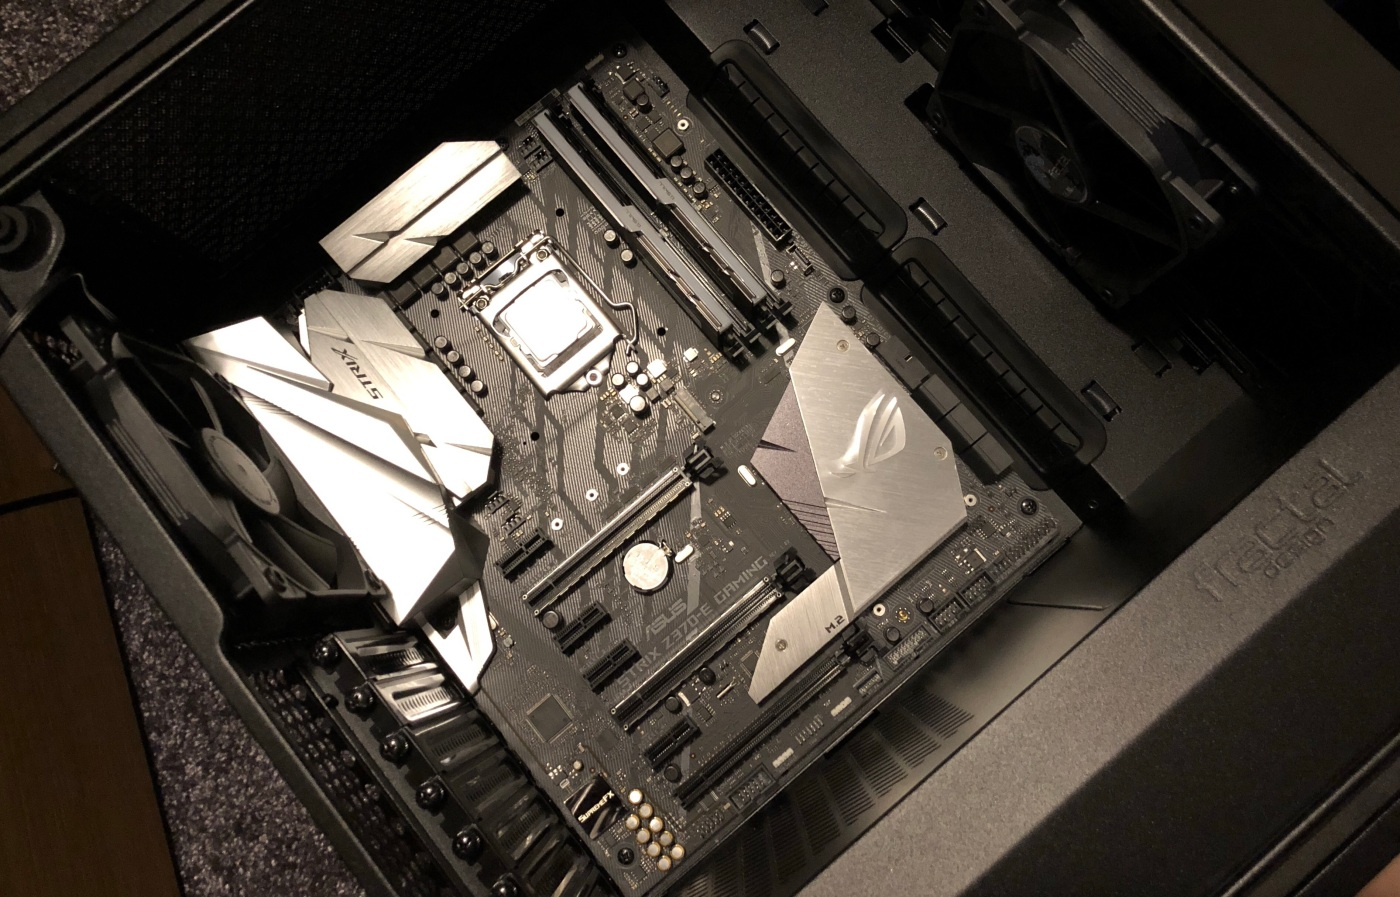 2018 Gaming Pc Build Part 3 Motherboard And I O Wiring Pxporcupine Building Games